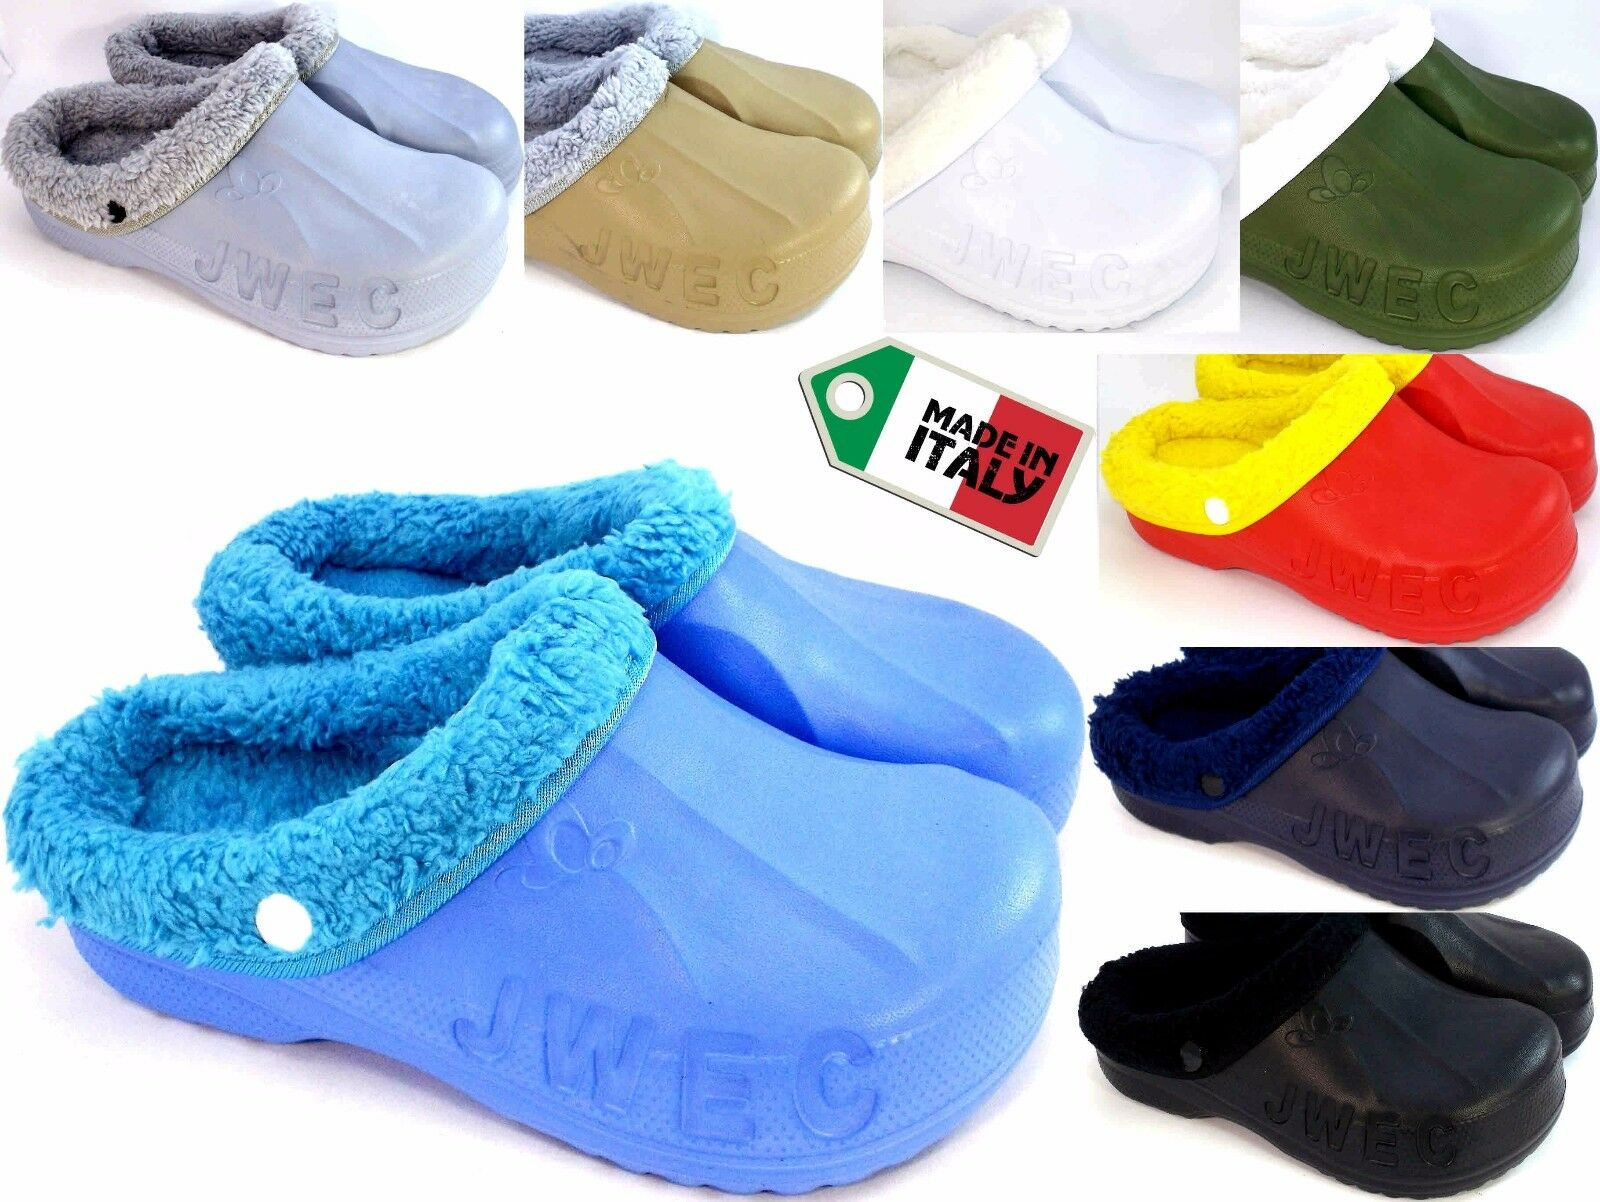 PANTOFOLE CIABATTE CLOG CLOGS ZOCCOLI GOMMA Pelliccia Invernale MADE IN  ITALY ... 61c831a315c